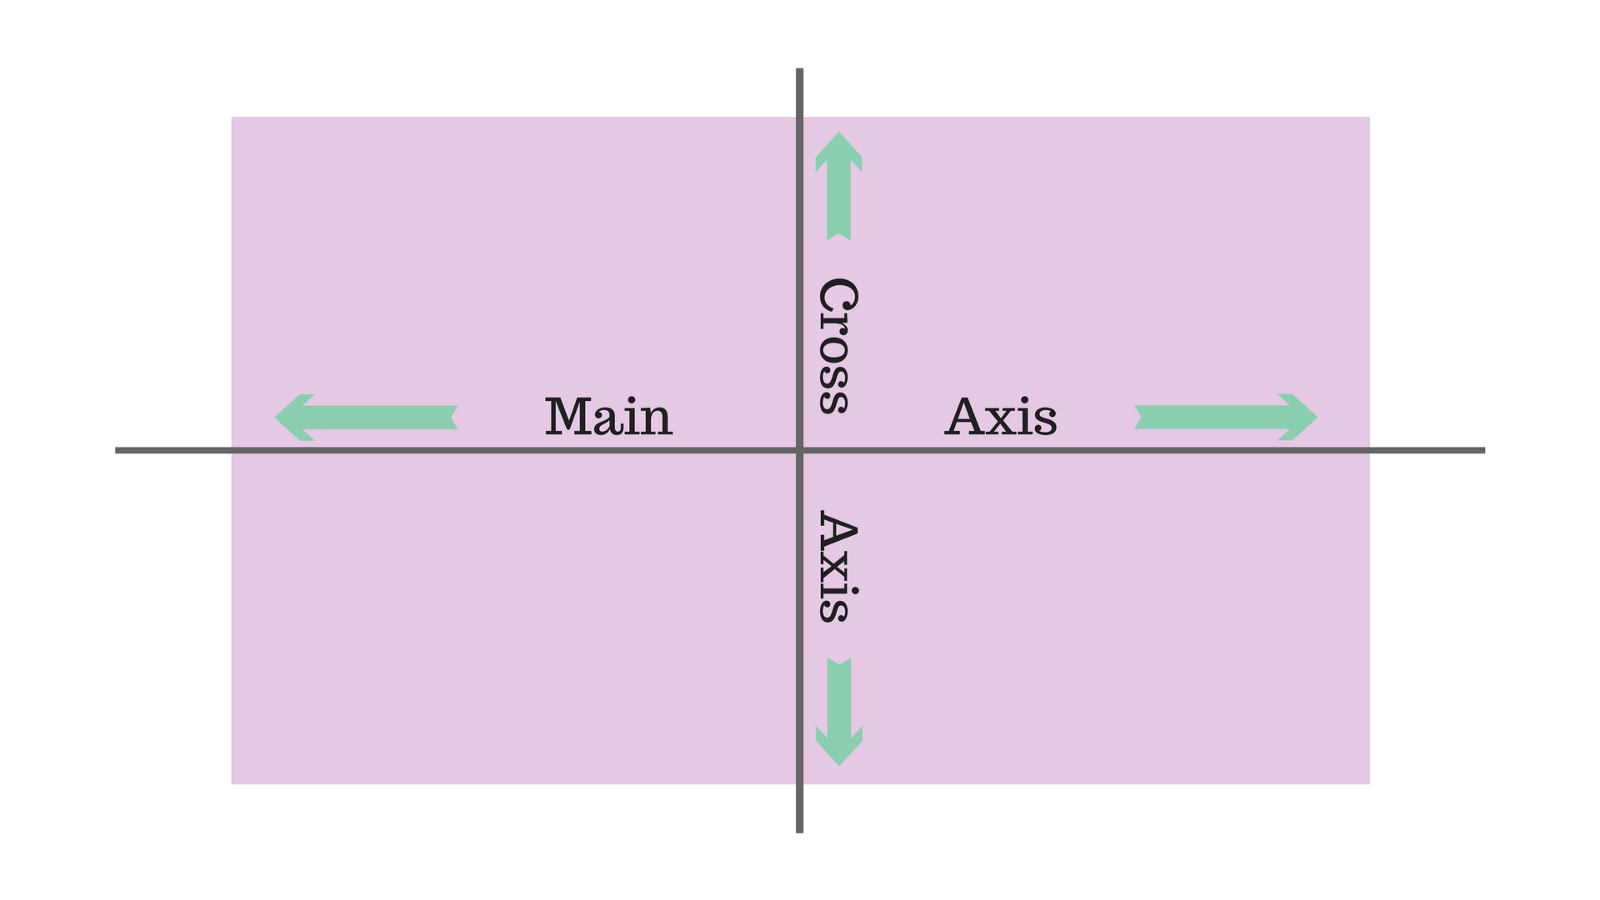 axis image